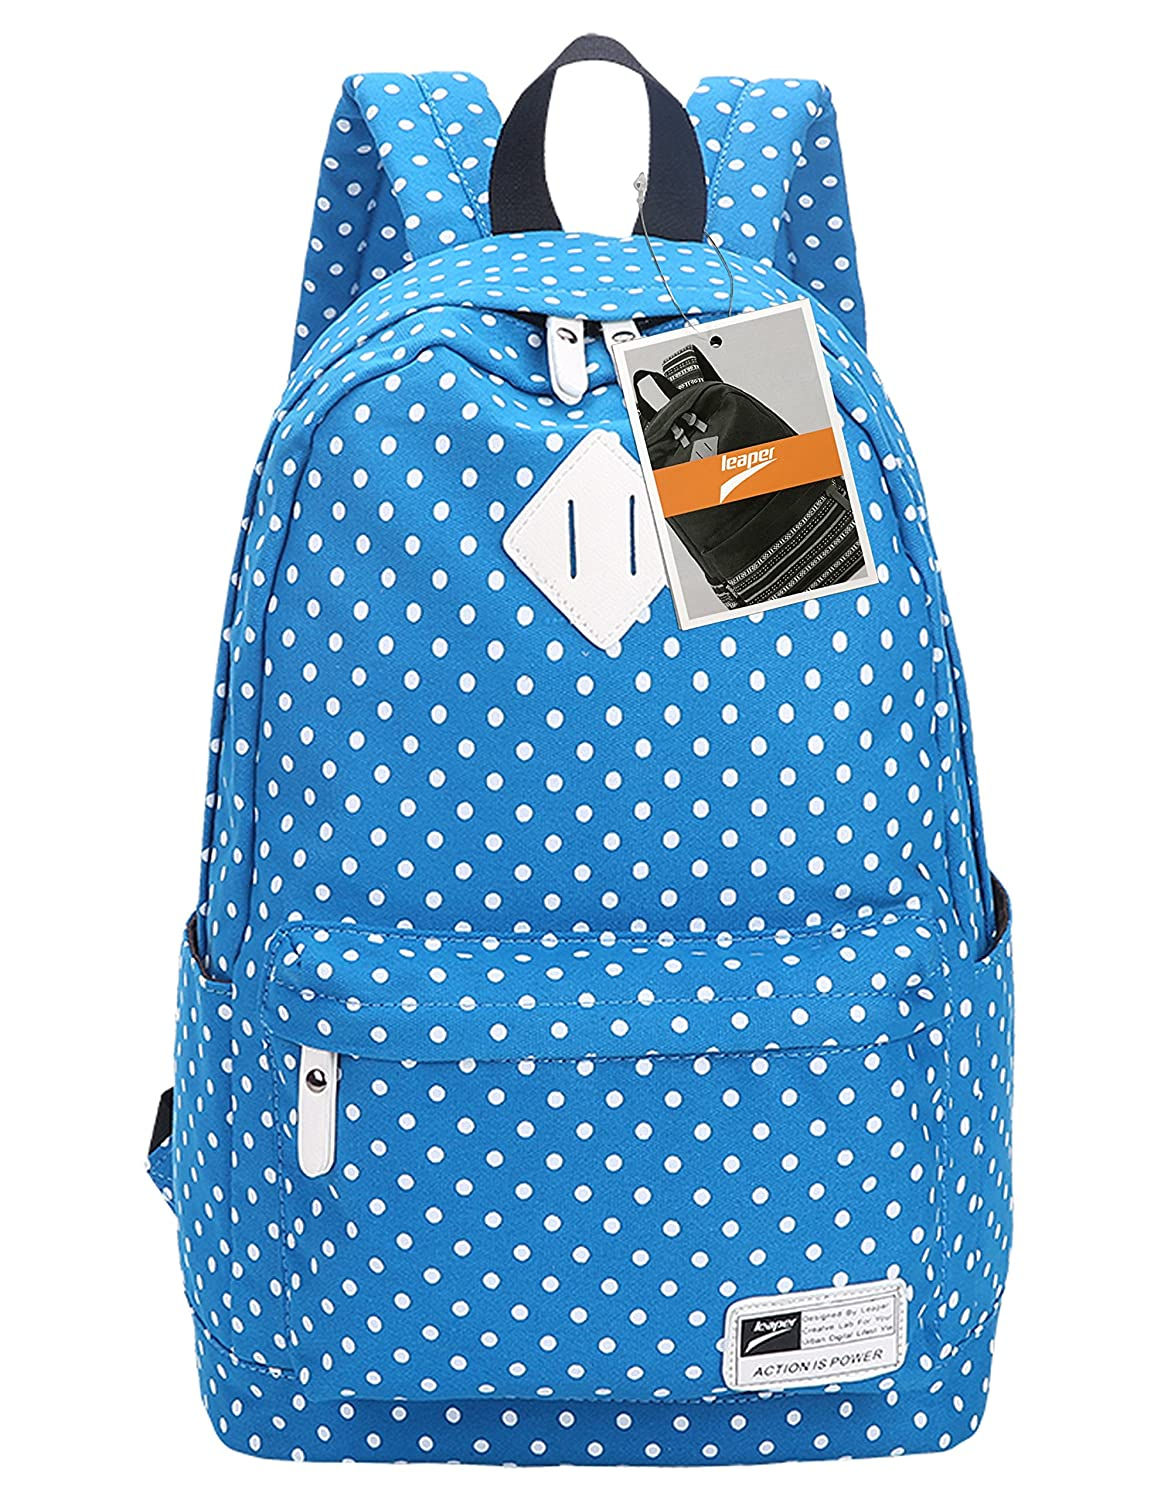 942ff8acf80a Leaper Polka Dots Laptop Backpack School Bag Casual Daypack Travel Rucksack  Knapsack(Light Blue)  Amazon.co.uk  Luggage